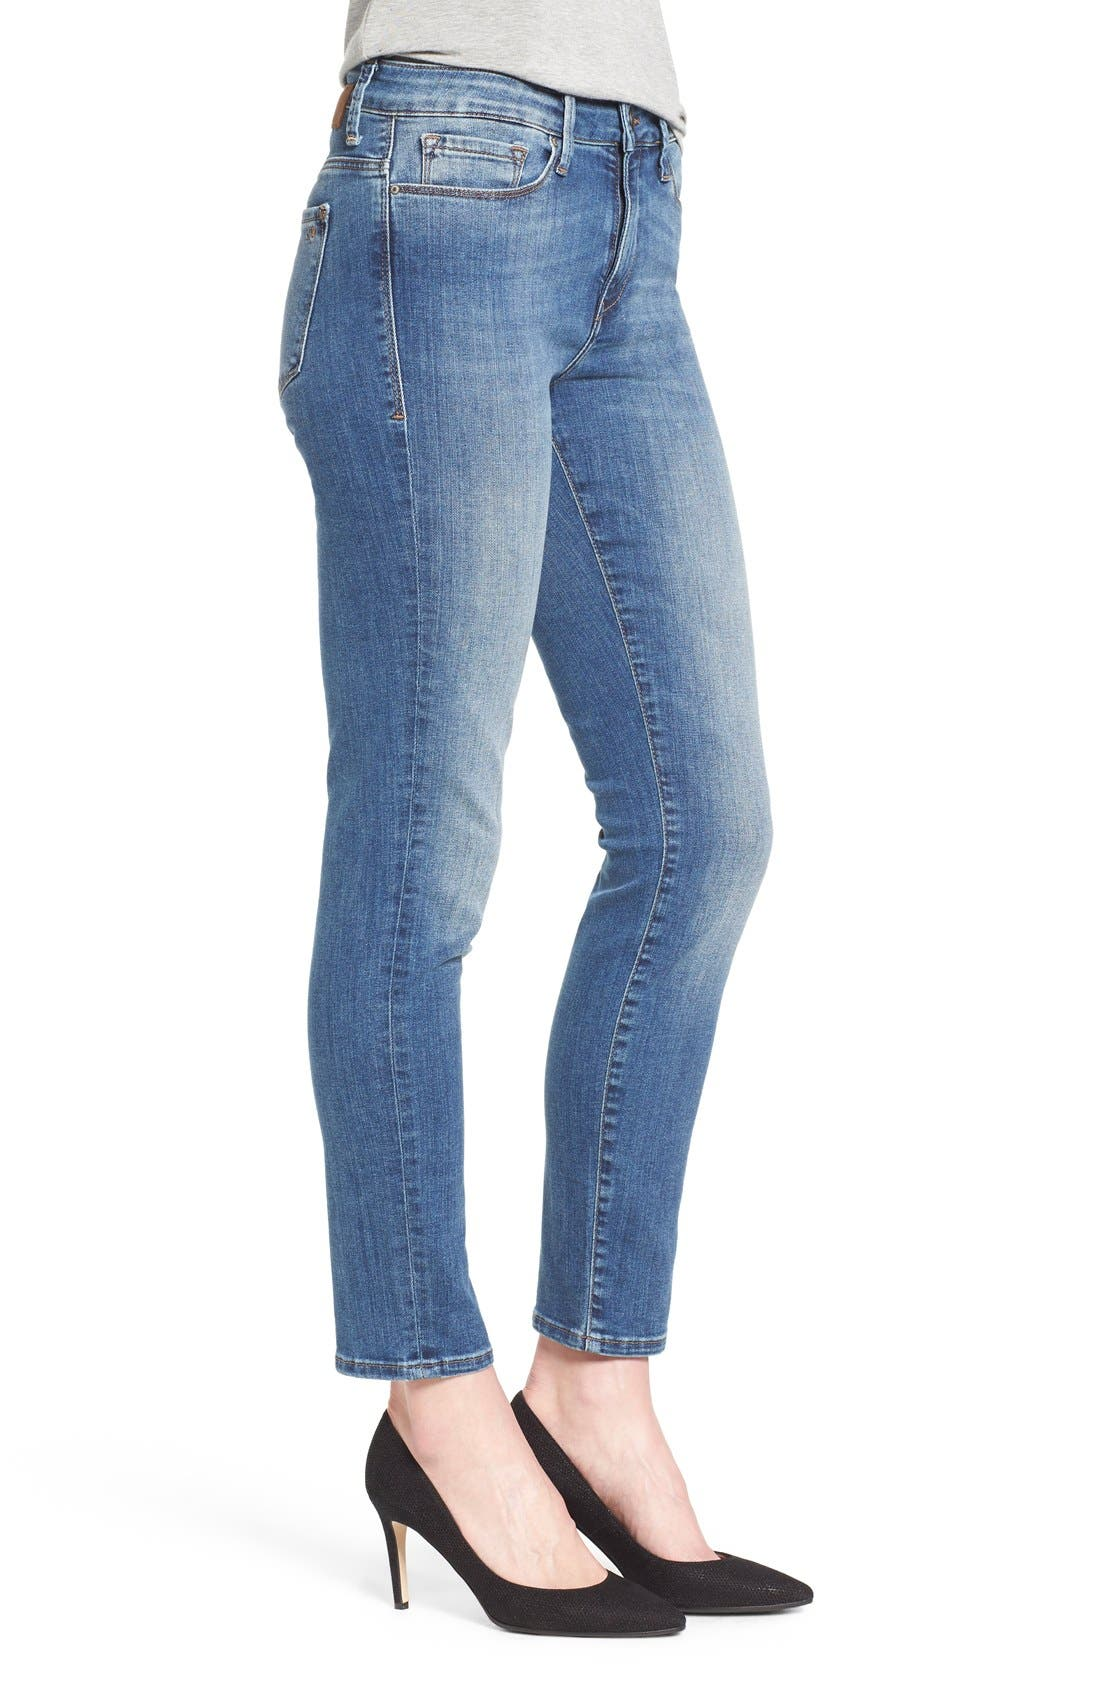 'Alissa' Stretch Slim Ankle Jeans,                             Alternate thumbnail 3, color,                             Light Blue